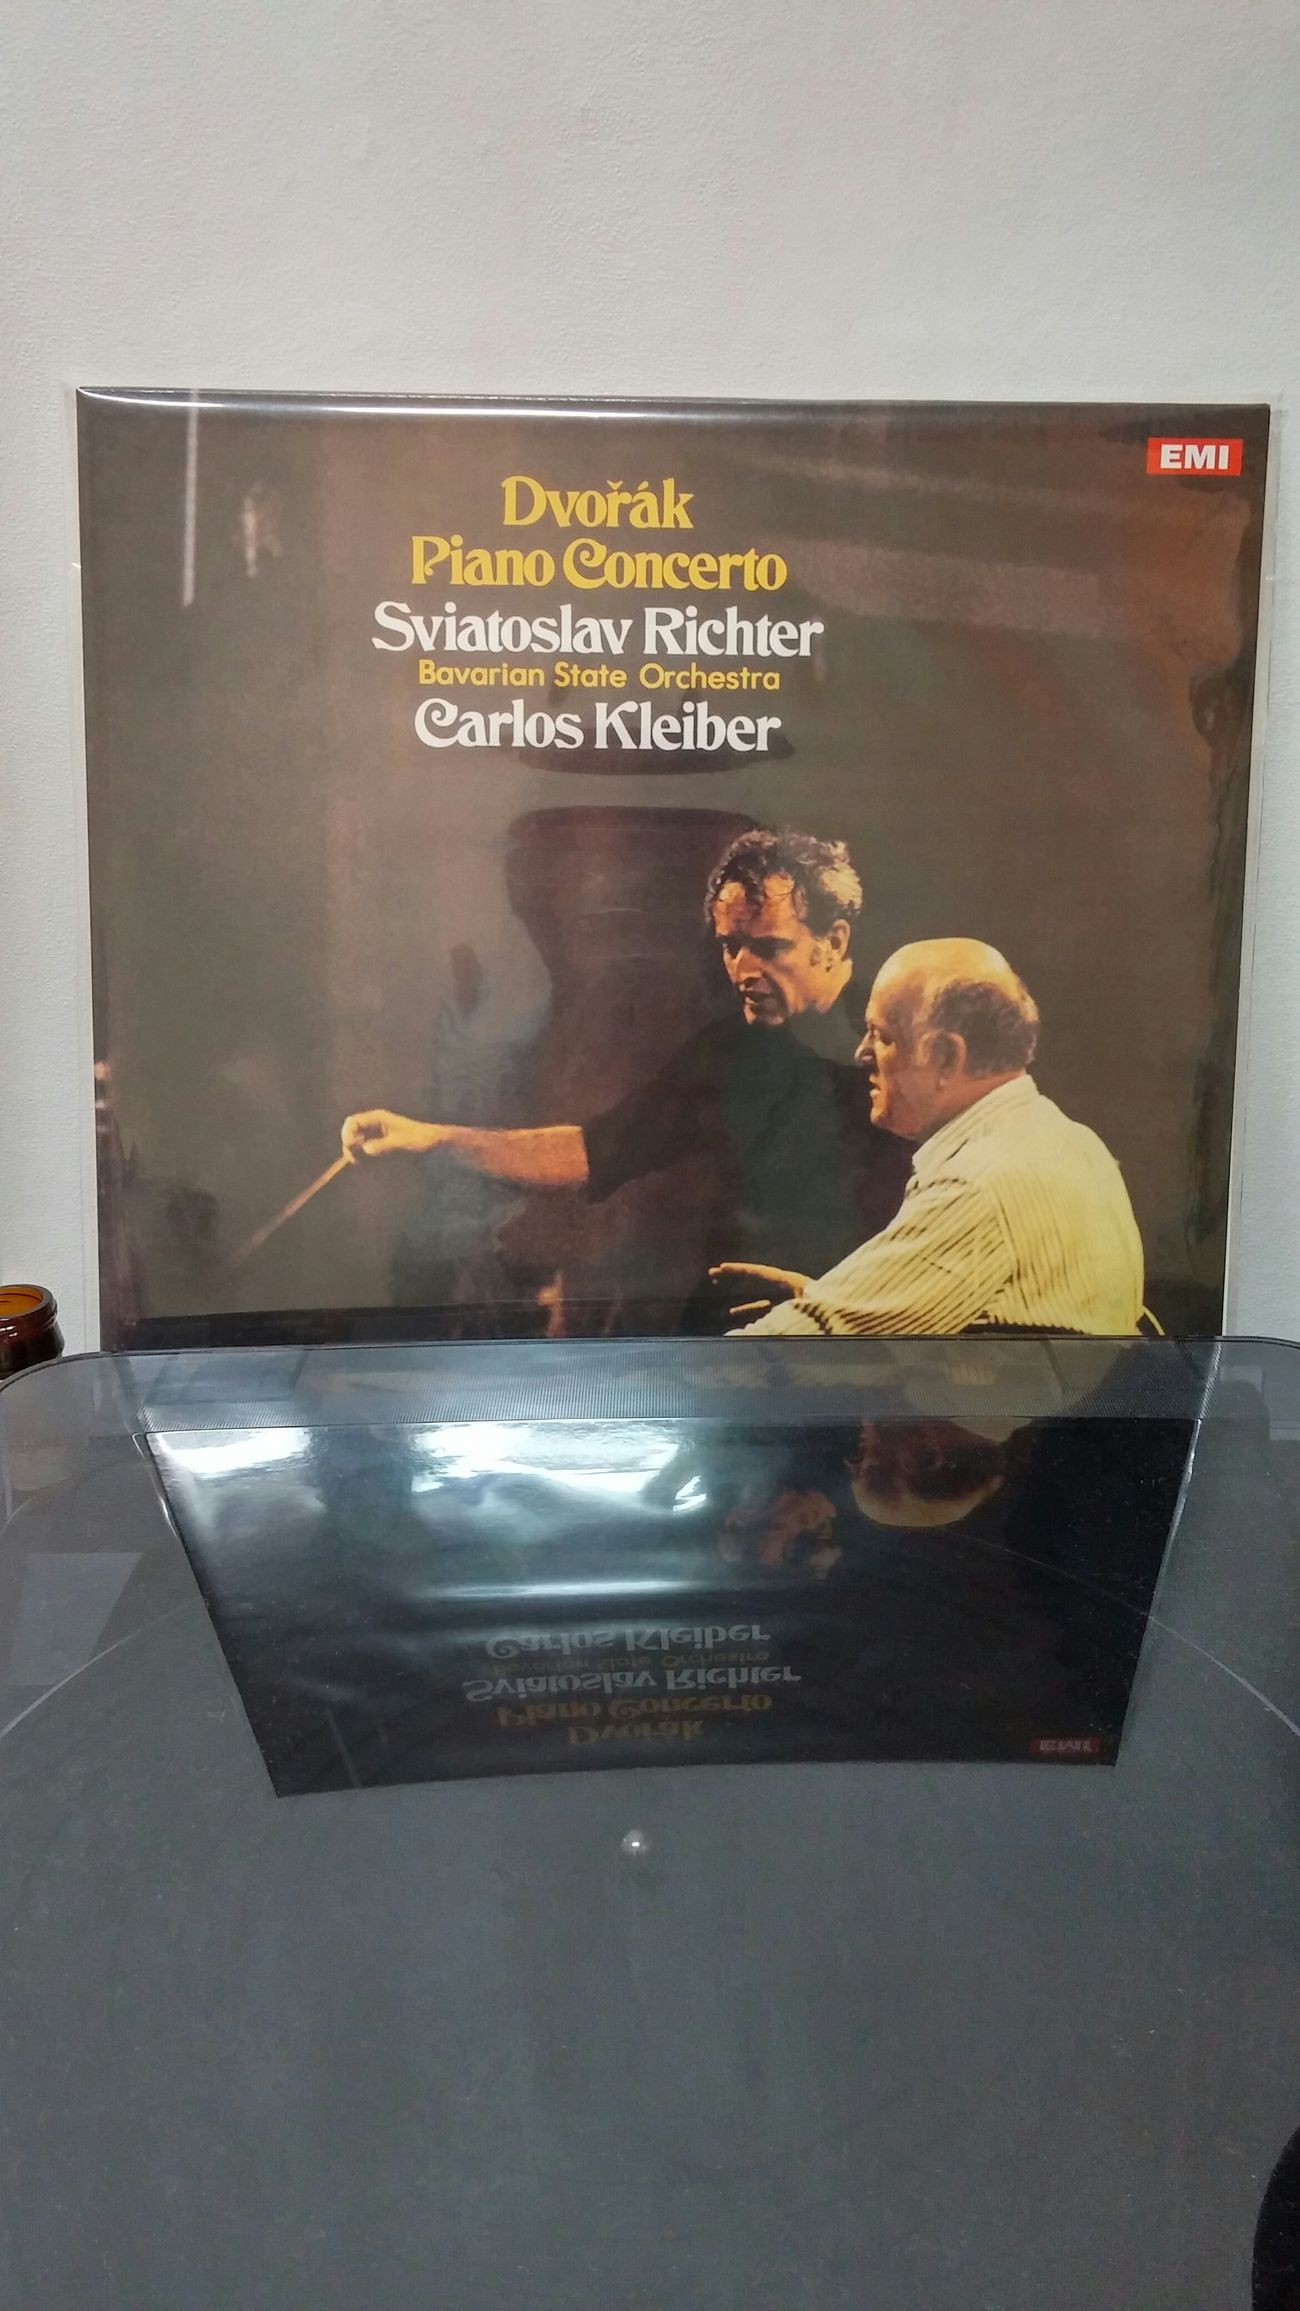 It sounds beautiful. Svjatoslav Richter Carlos Kleiber